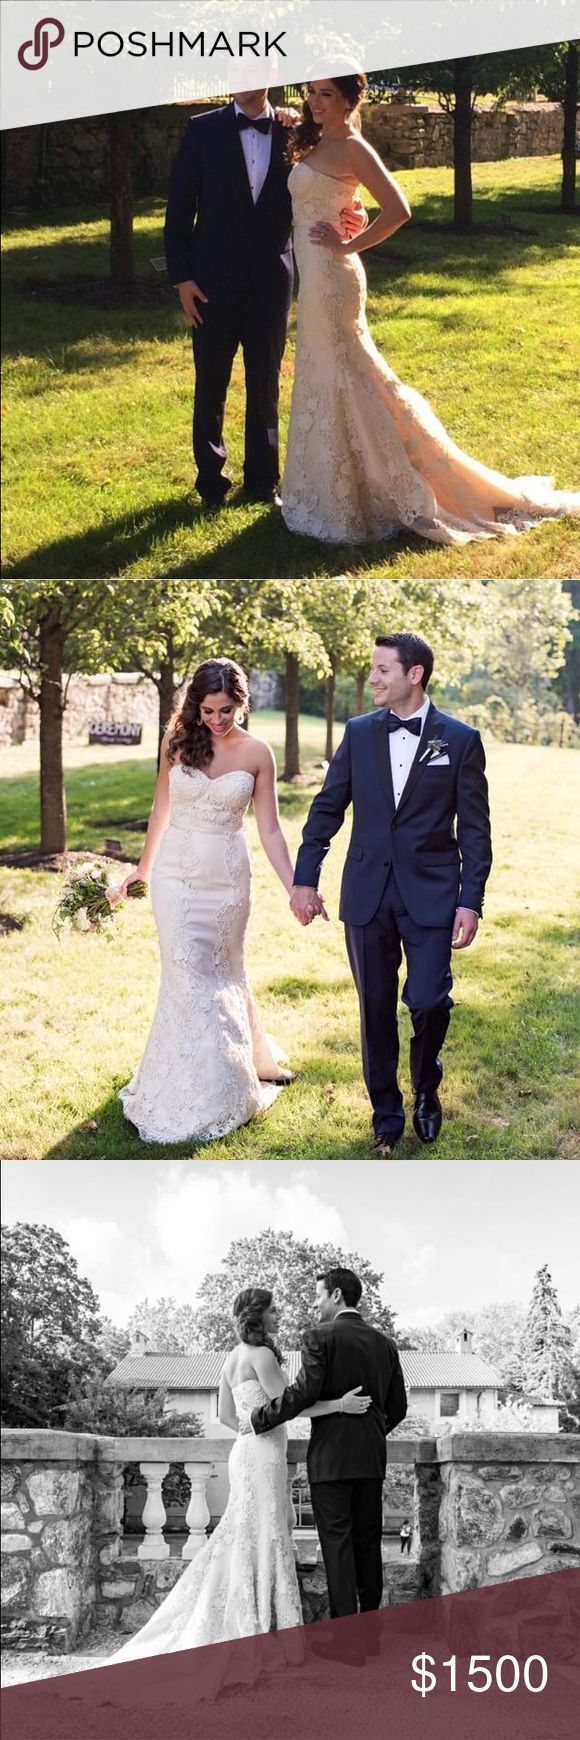 Birnbaum & Bullock Alessia Wedding Gown This champagne wedding dress has one-of-a-kind (so the designer told me) appliqué lace. The designer, Robert Bullock, is out of Manhattan & the dress was also featured in Mahattan Bride. This gorgeous lace wedding dress was worn at my September 2015 wedding. My mom has finally convinced me to part with it and I hope that it can make someone else just as happy as it made me on their special day! Robert Bullock Dresses Wedding